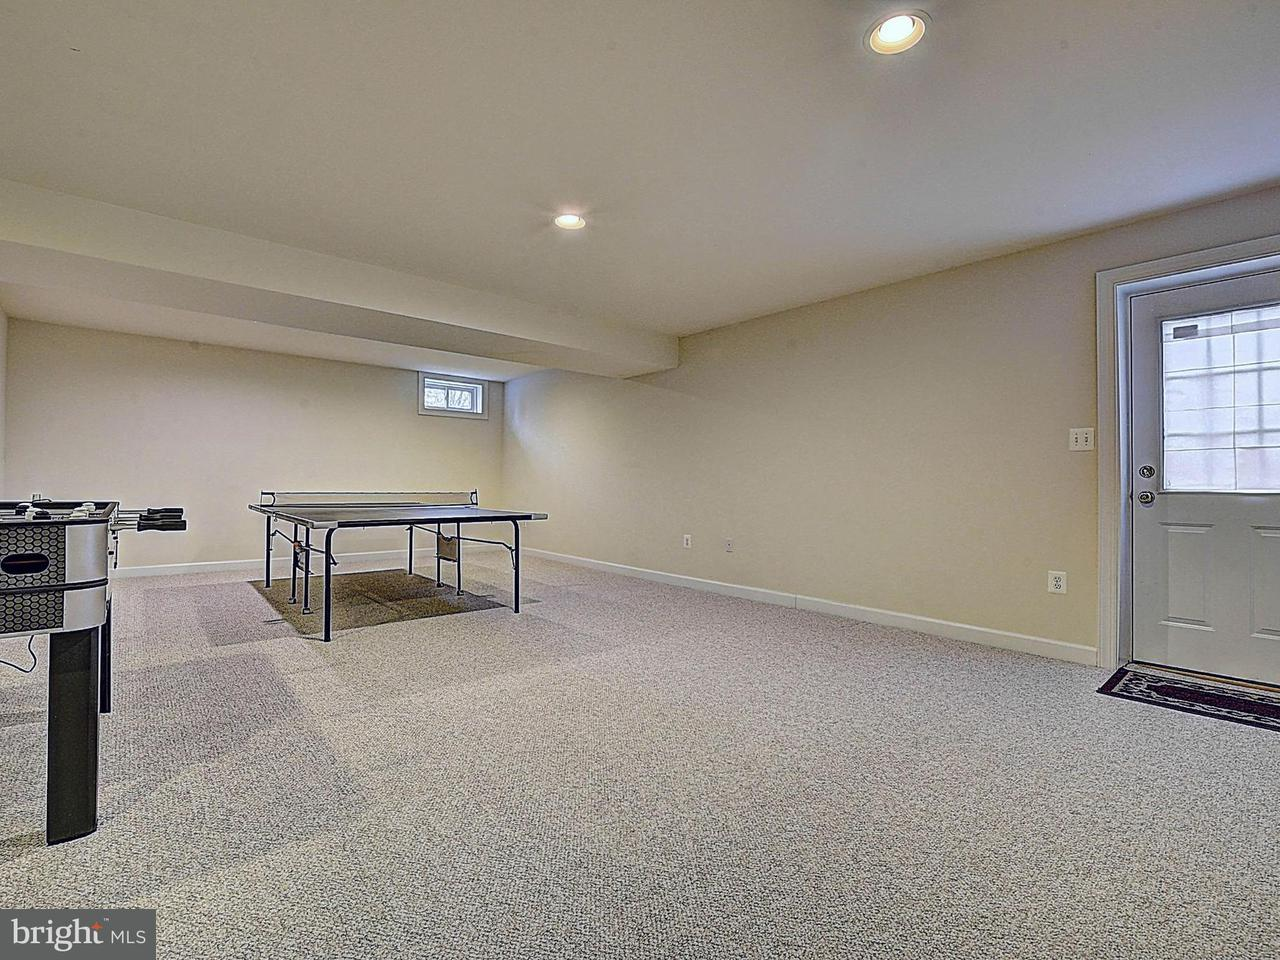 Additional photo for property listing at 9160 Finnegan Street 9160 Finnegan Street Lorton, Βιρτζινια 22079 Ηνωμενεσ Πολιτειεσ